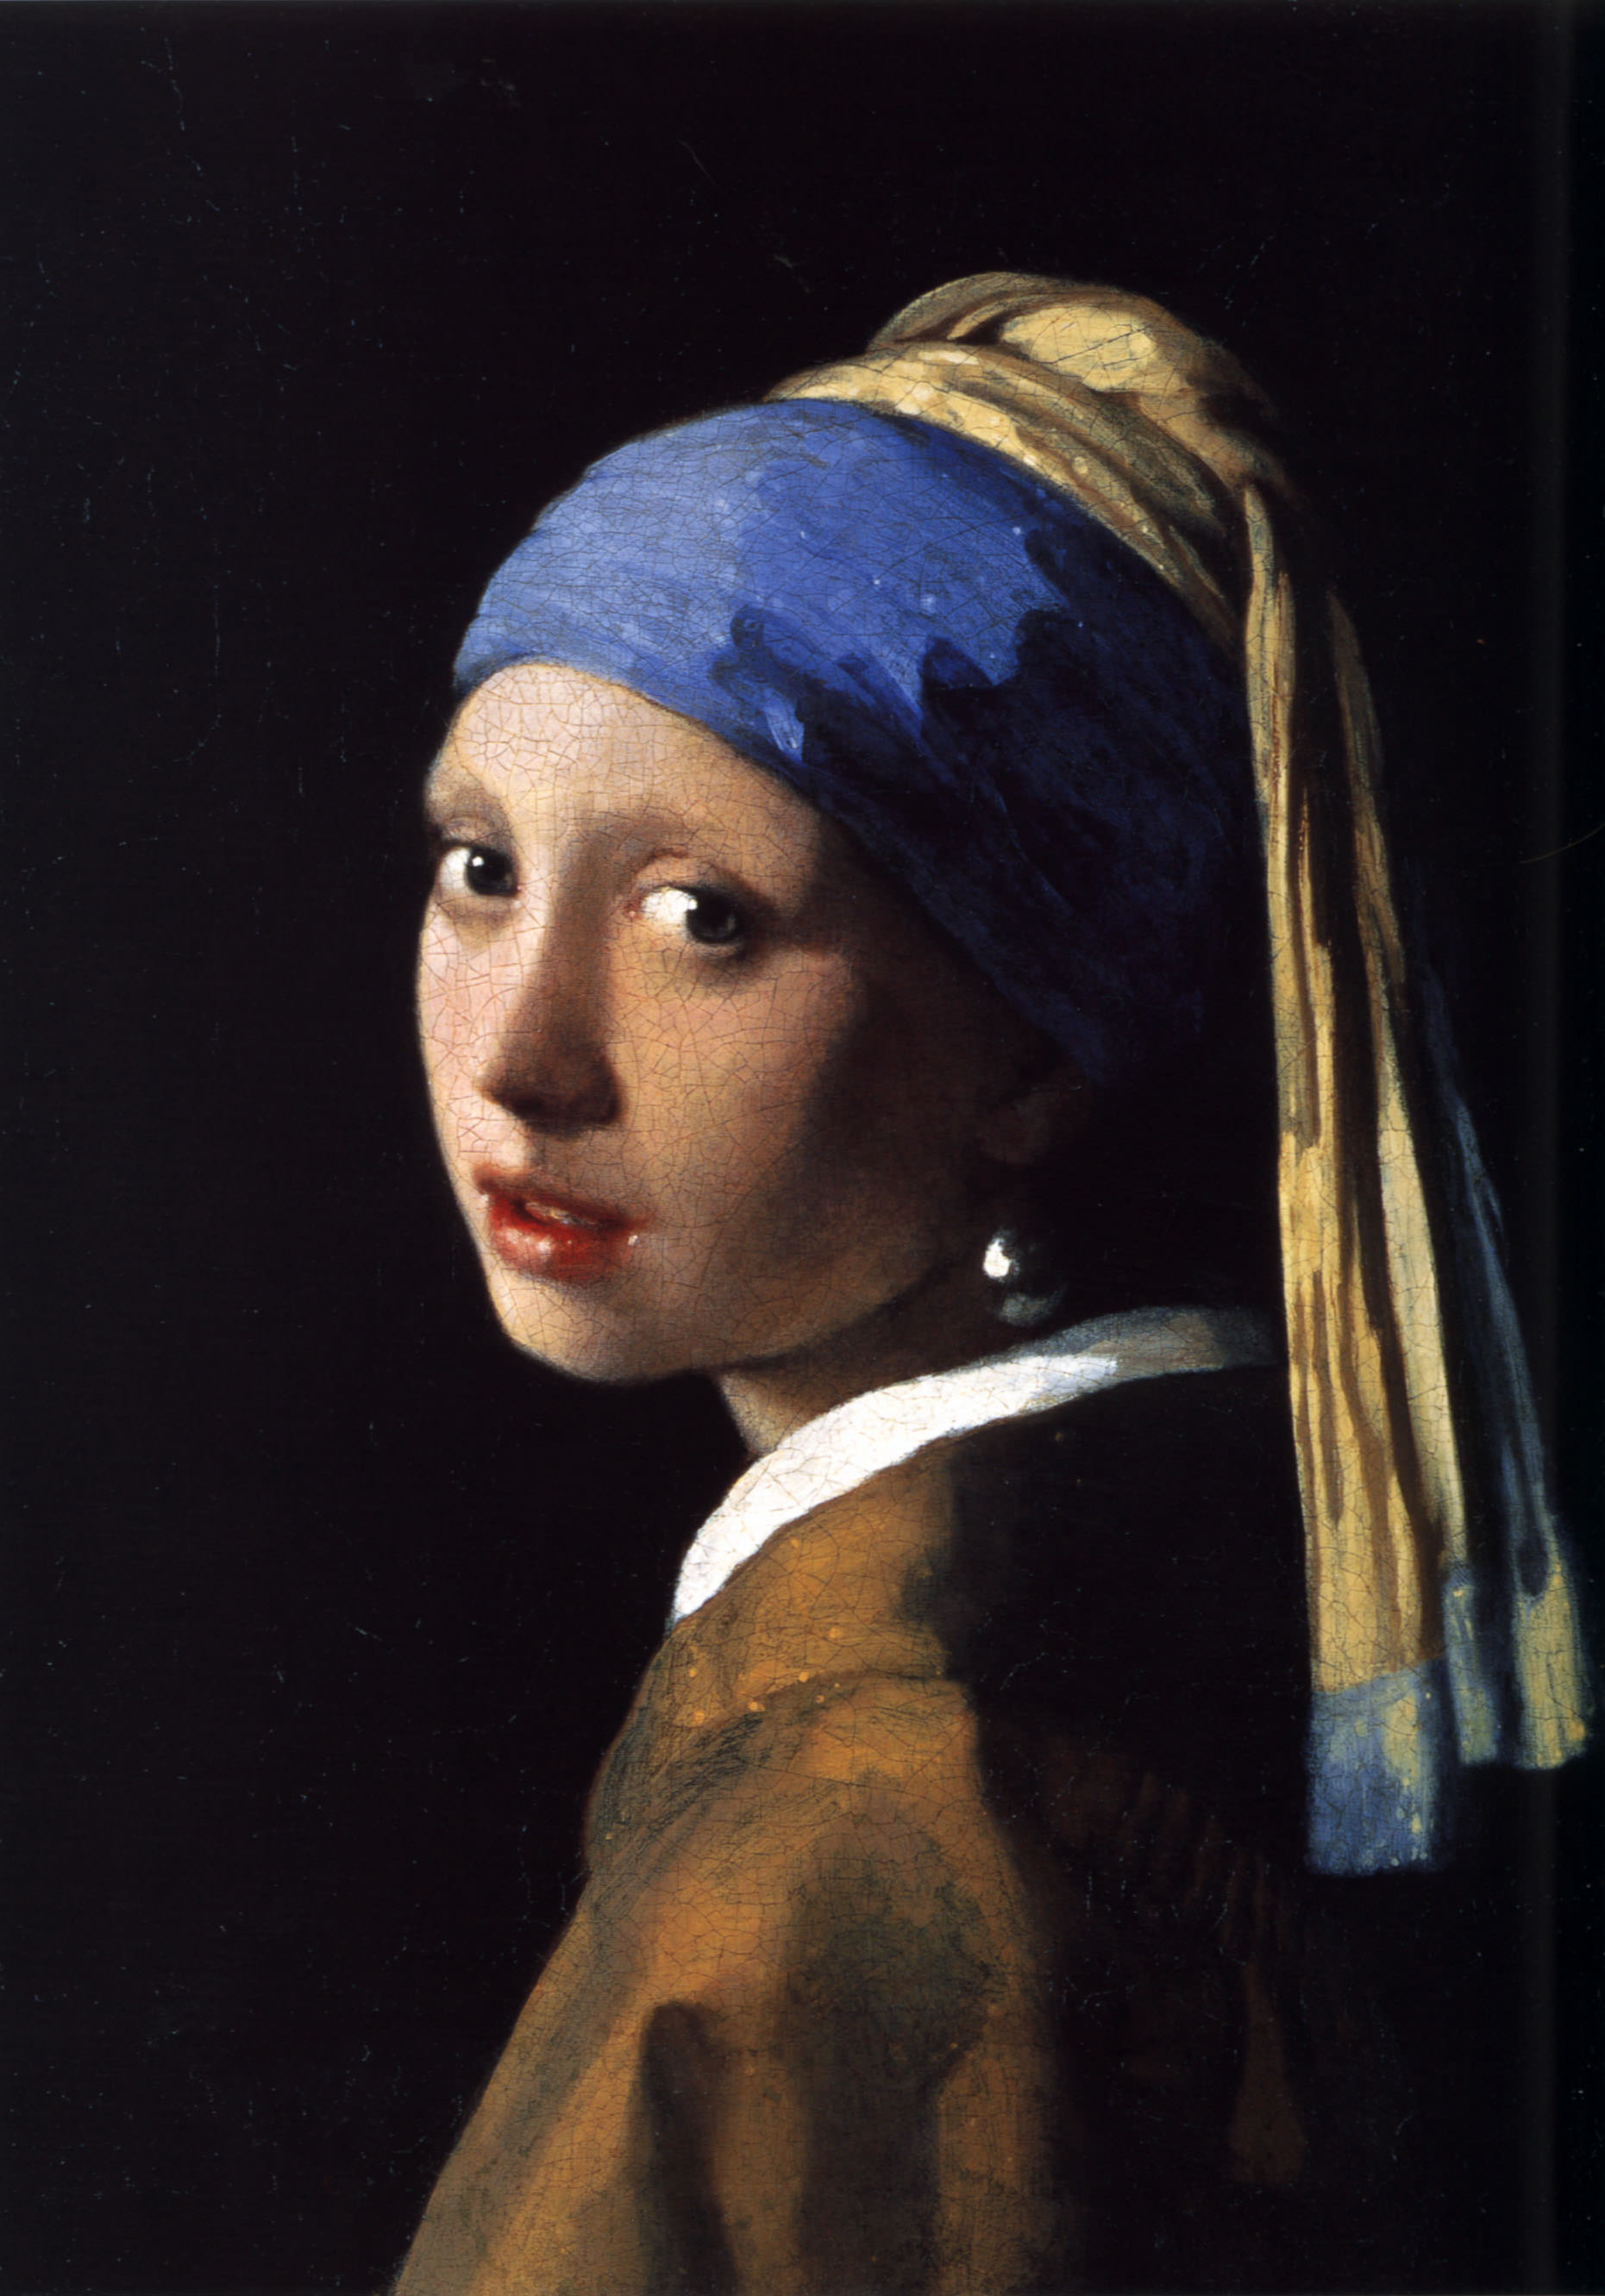 ['<em>The girl with the pearl earring (1665)</em>' ]